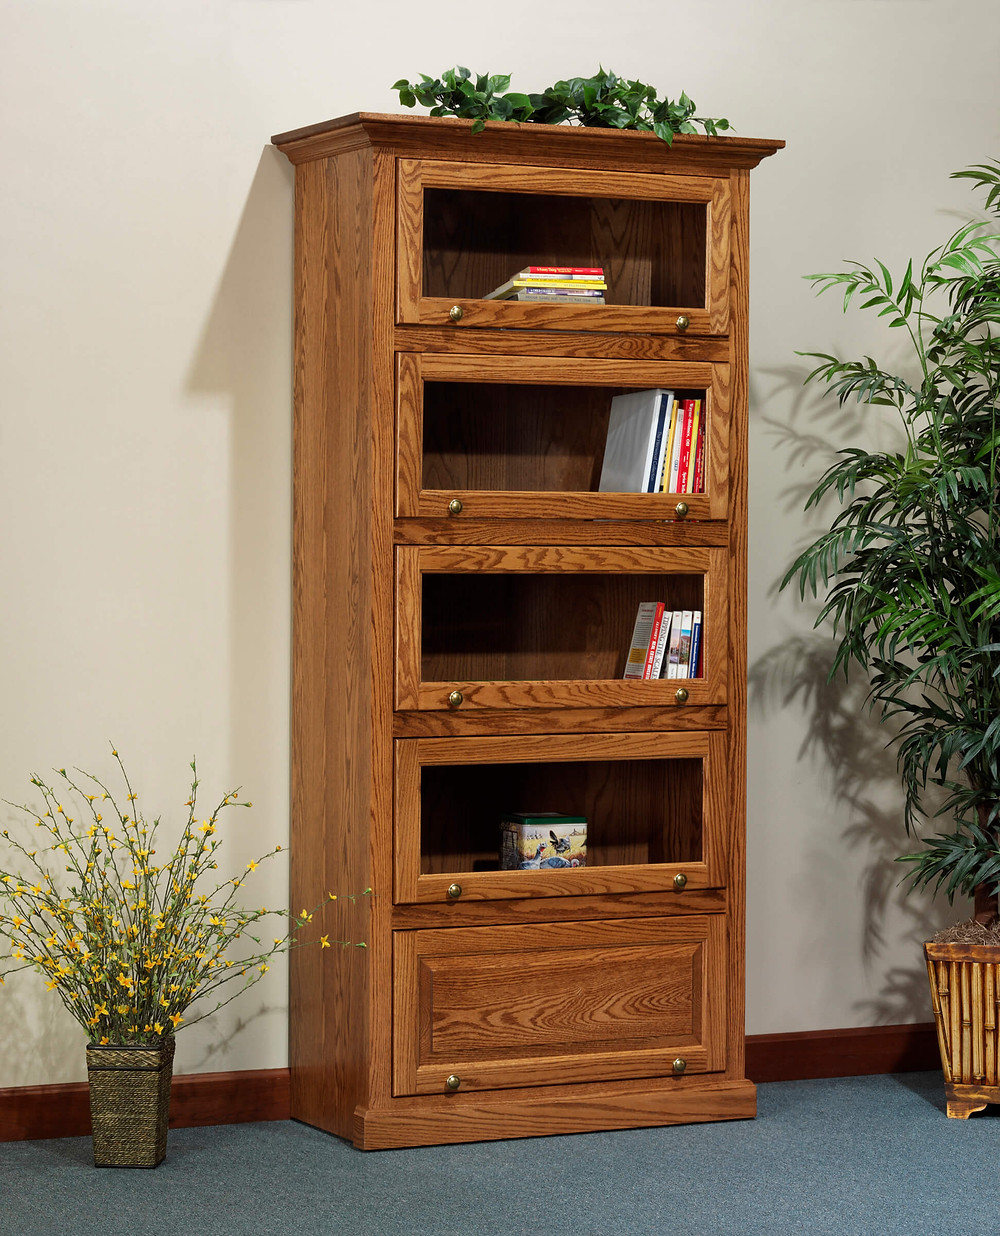 Highland Barrister Bookcase|Oak in Fruitwood OCS102|40 1/4in W x 19in D x 85 3/4in H|The Amish Home|Amish Furniture at the Pittsburgh Mills